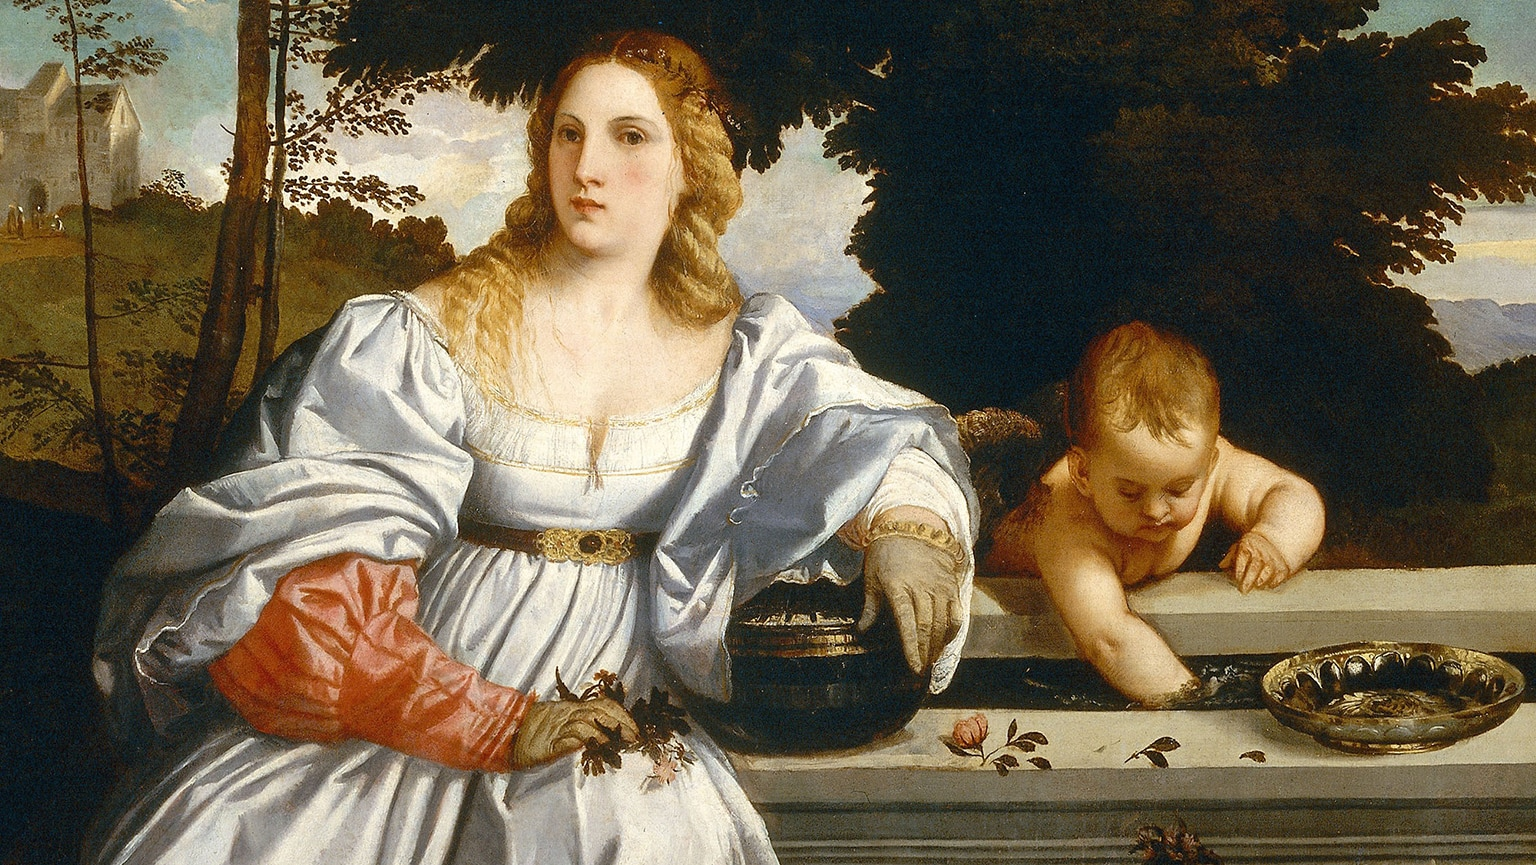 Titian—The Early Years